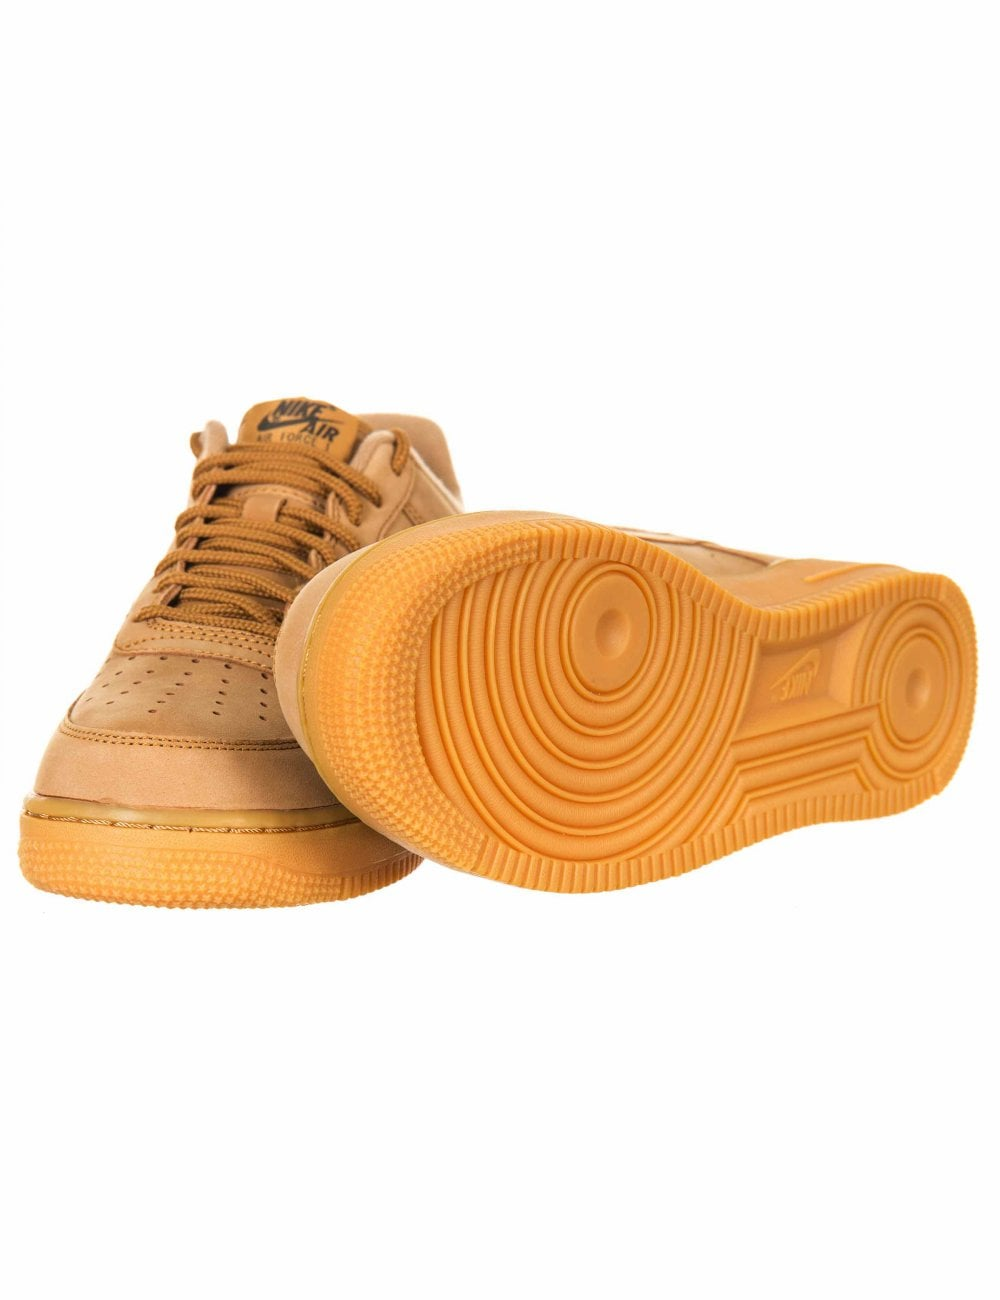 new style e3292 f5466 Air Force 1 '07 WB Trainers - Wheat